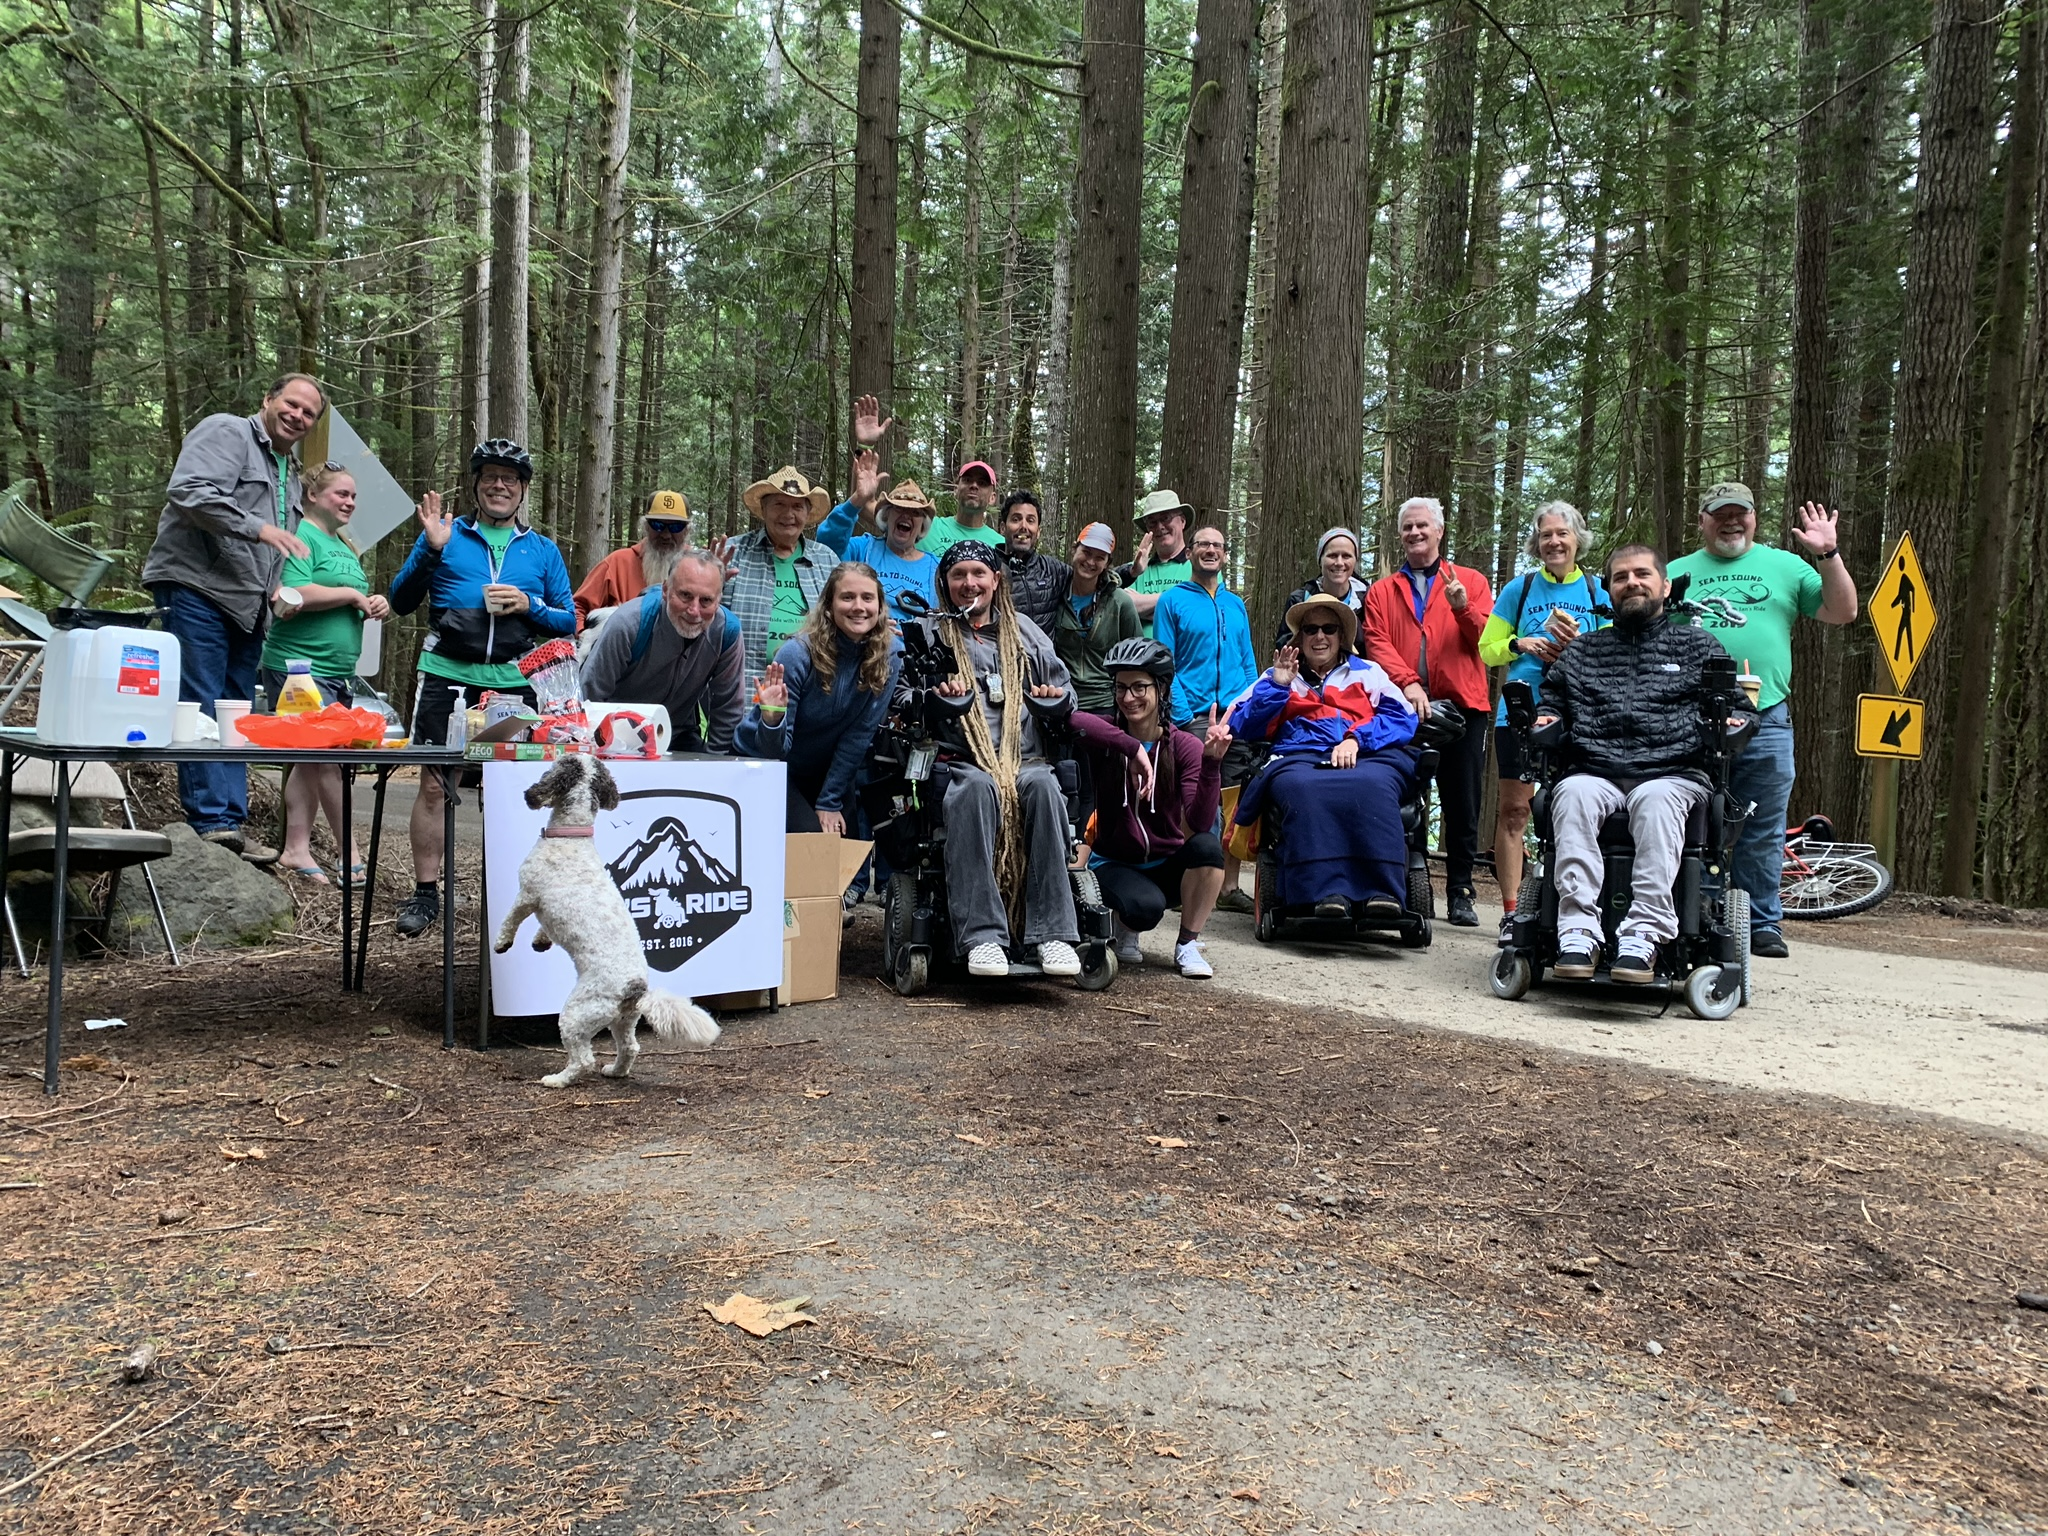 Day one finish line for wheelchairs. Next year we should be able to make it all the way around Lake Crescent!